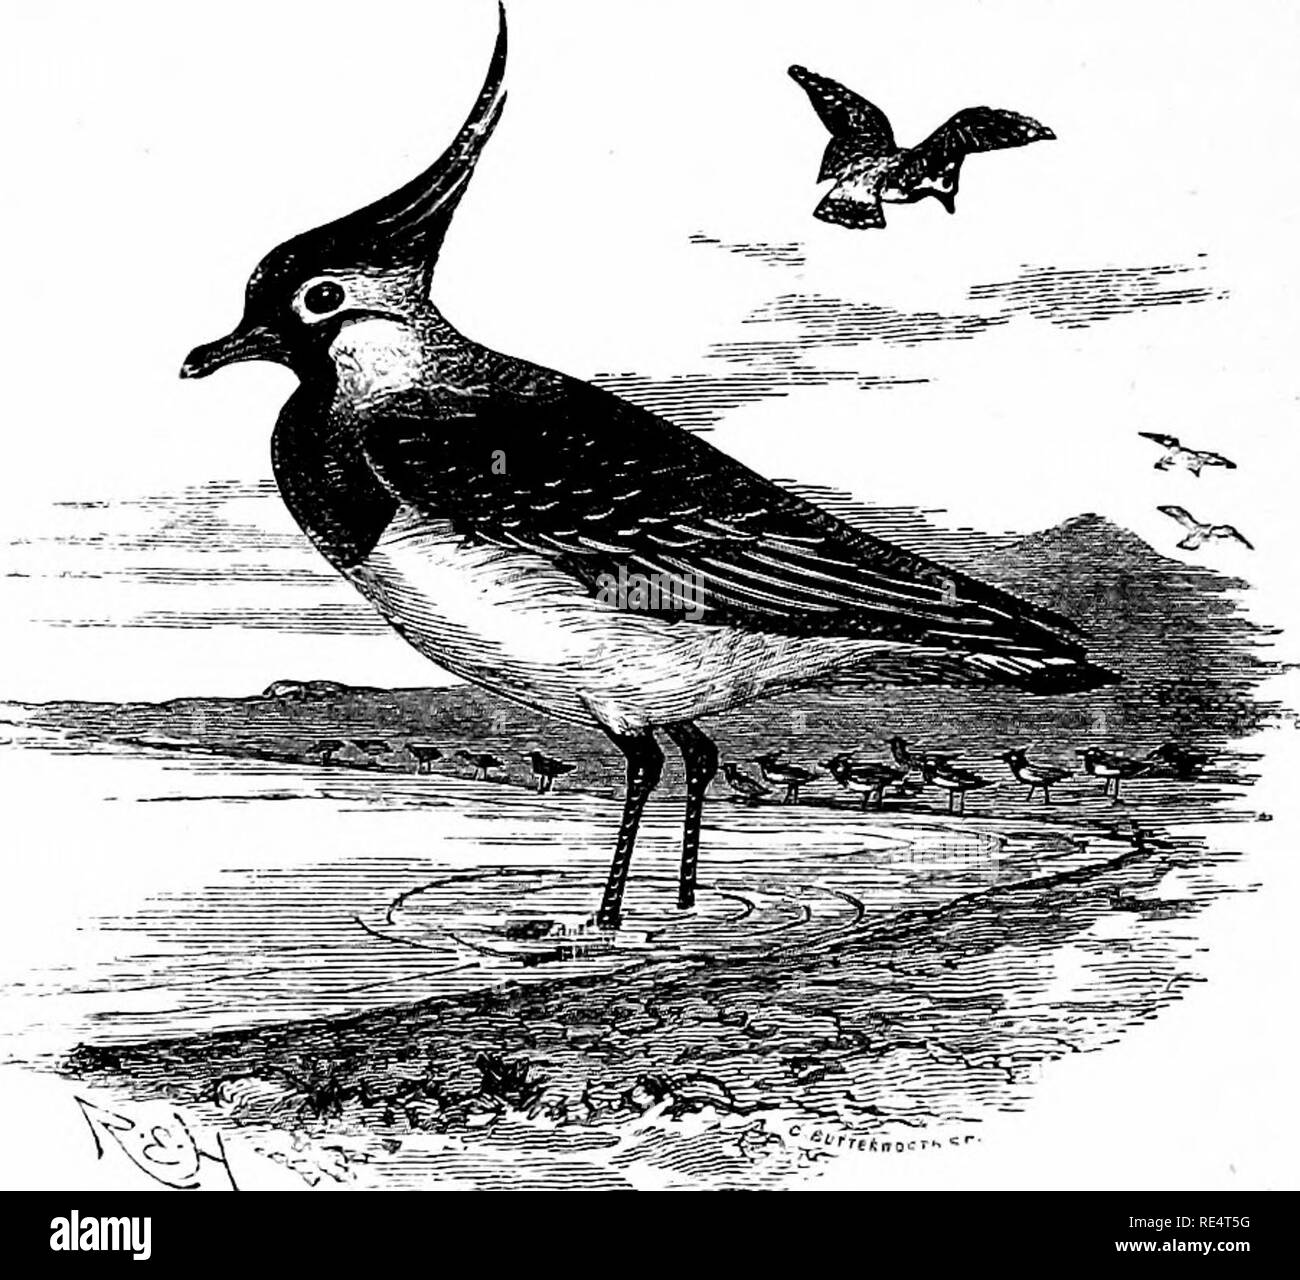 """. The birds of the Japanese Empire. Birds. 312 LIMICOLiE. The breeding-range of the Grey-headed Wattled Lapwing extends westwards from Japan across North China to South-east Mongolia. As it is not known to have occurred either in Siberia or Yezzo it is fair to assume that it found its way to Southern Japan via Formosa or the Corea. 312. VANELLUS CRISTATUS. (COMMON LAPWING.) VanellKS cristatus, """"Wolf and Meyer, 'Vog. Deutschland, ii. p. 110 (1805). The Common Lapwing has both the upper and under tail-coverts of a chestnut-buff colour.. Vanellus eristatim. Figures : Dresser, Birds of Europe - Stock Image"""